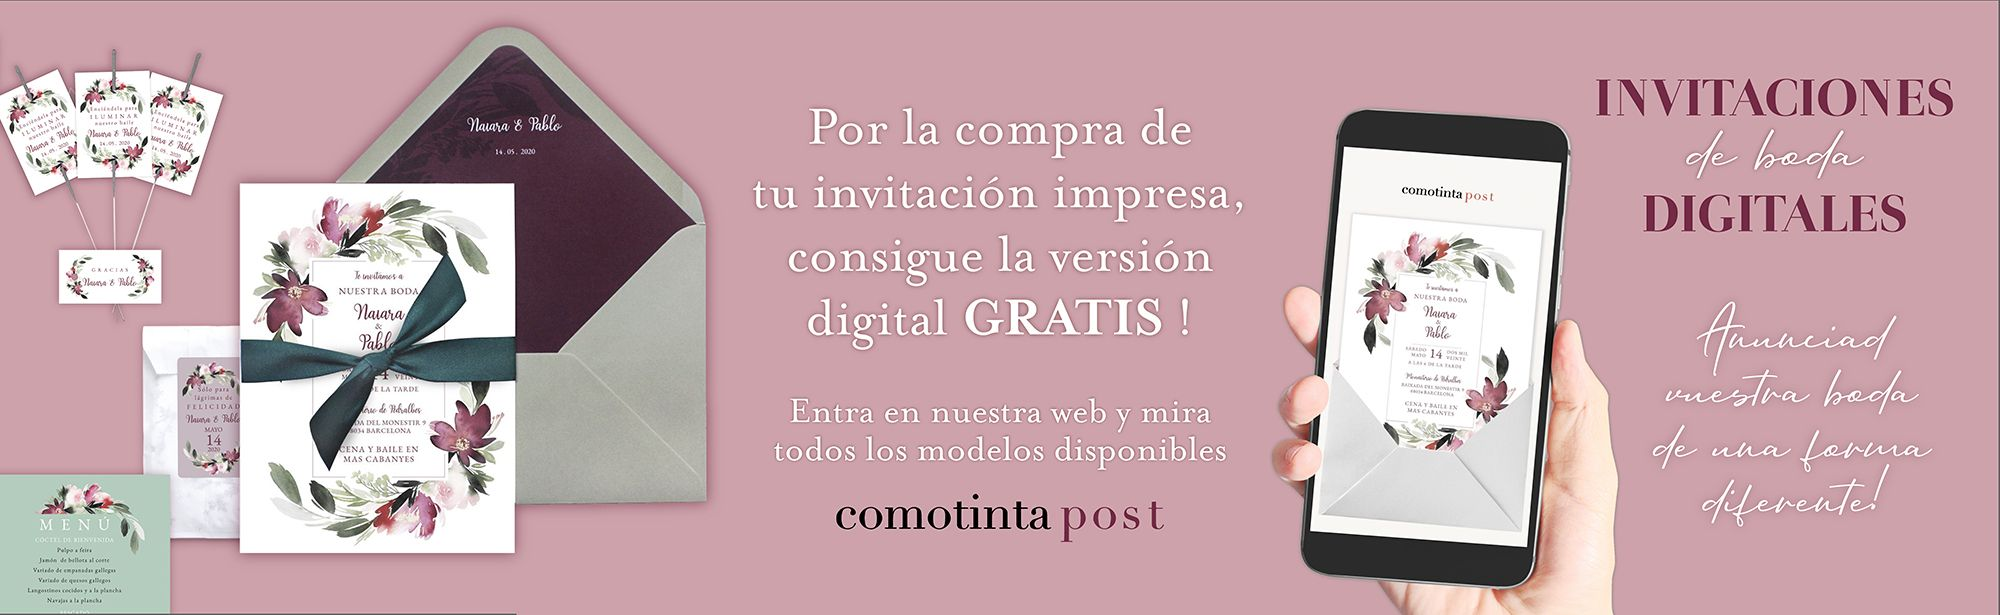 Invitaciones de boda Digitales